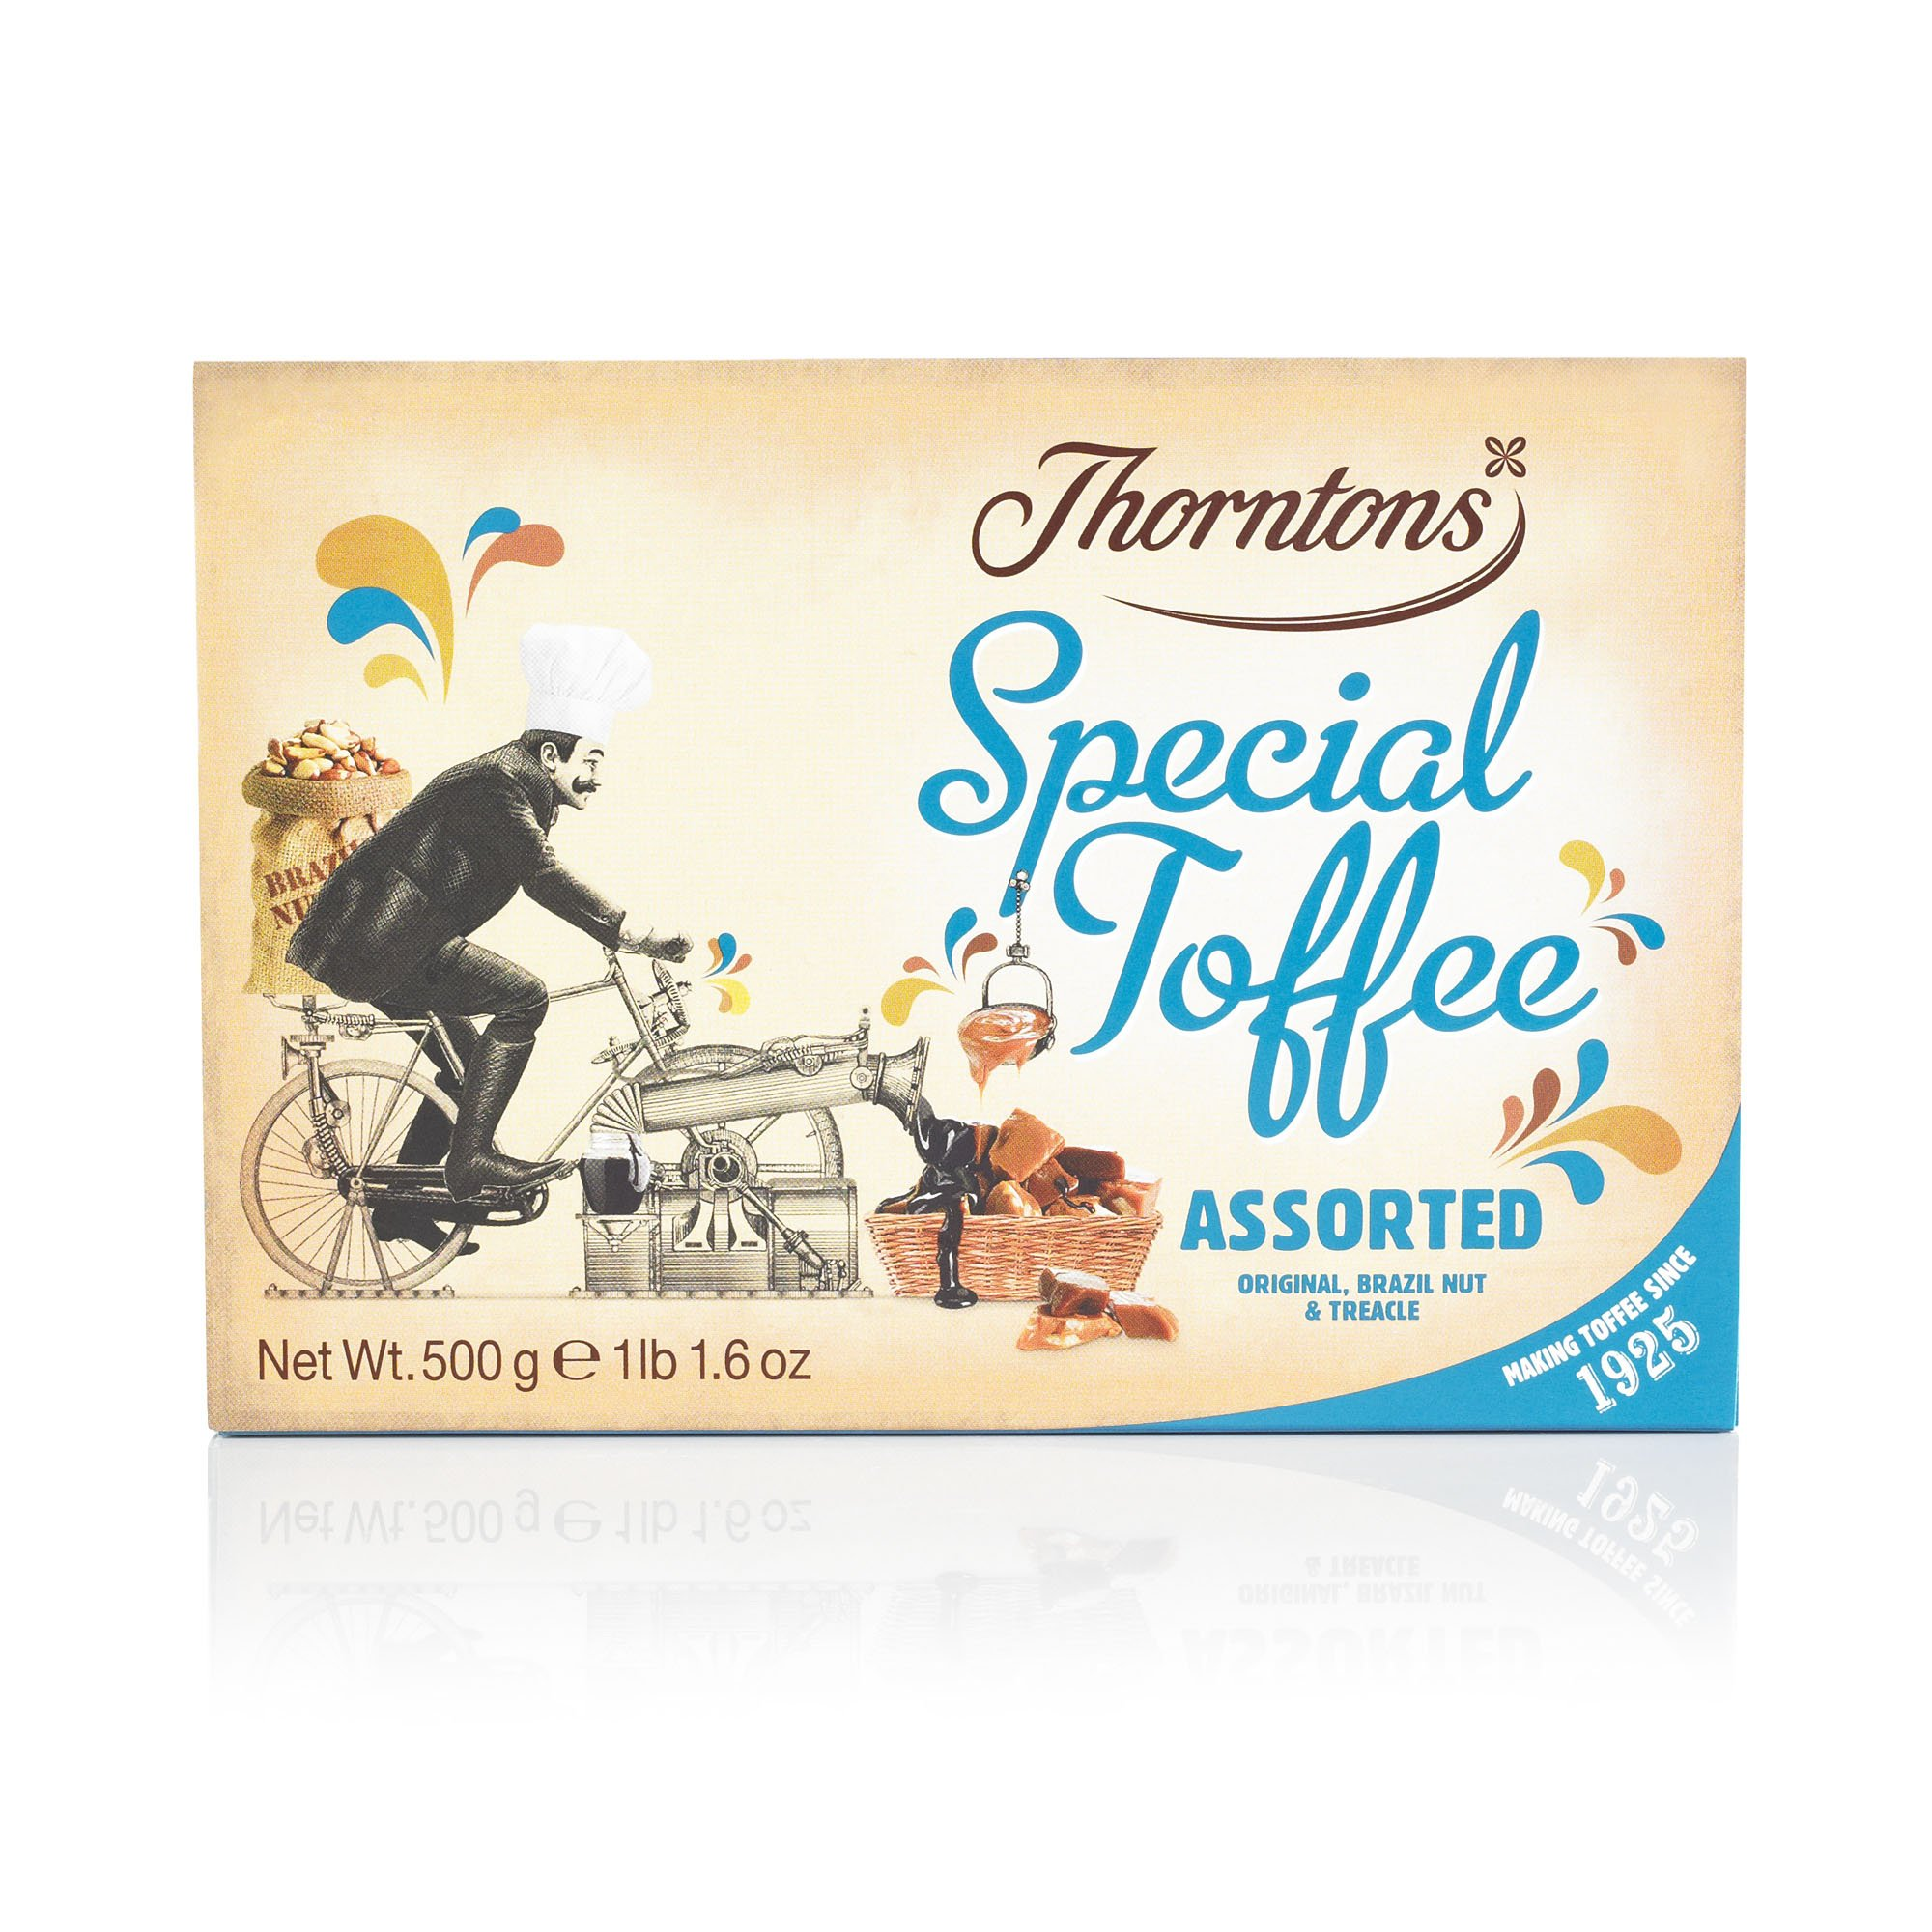 Thorntons Assorted Special Toffee Box (500g) by Thorntons